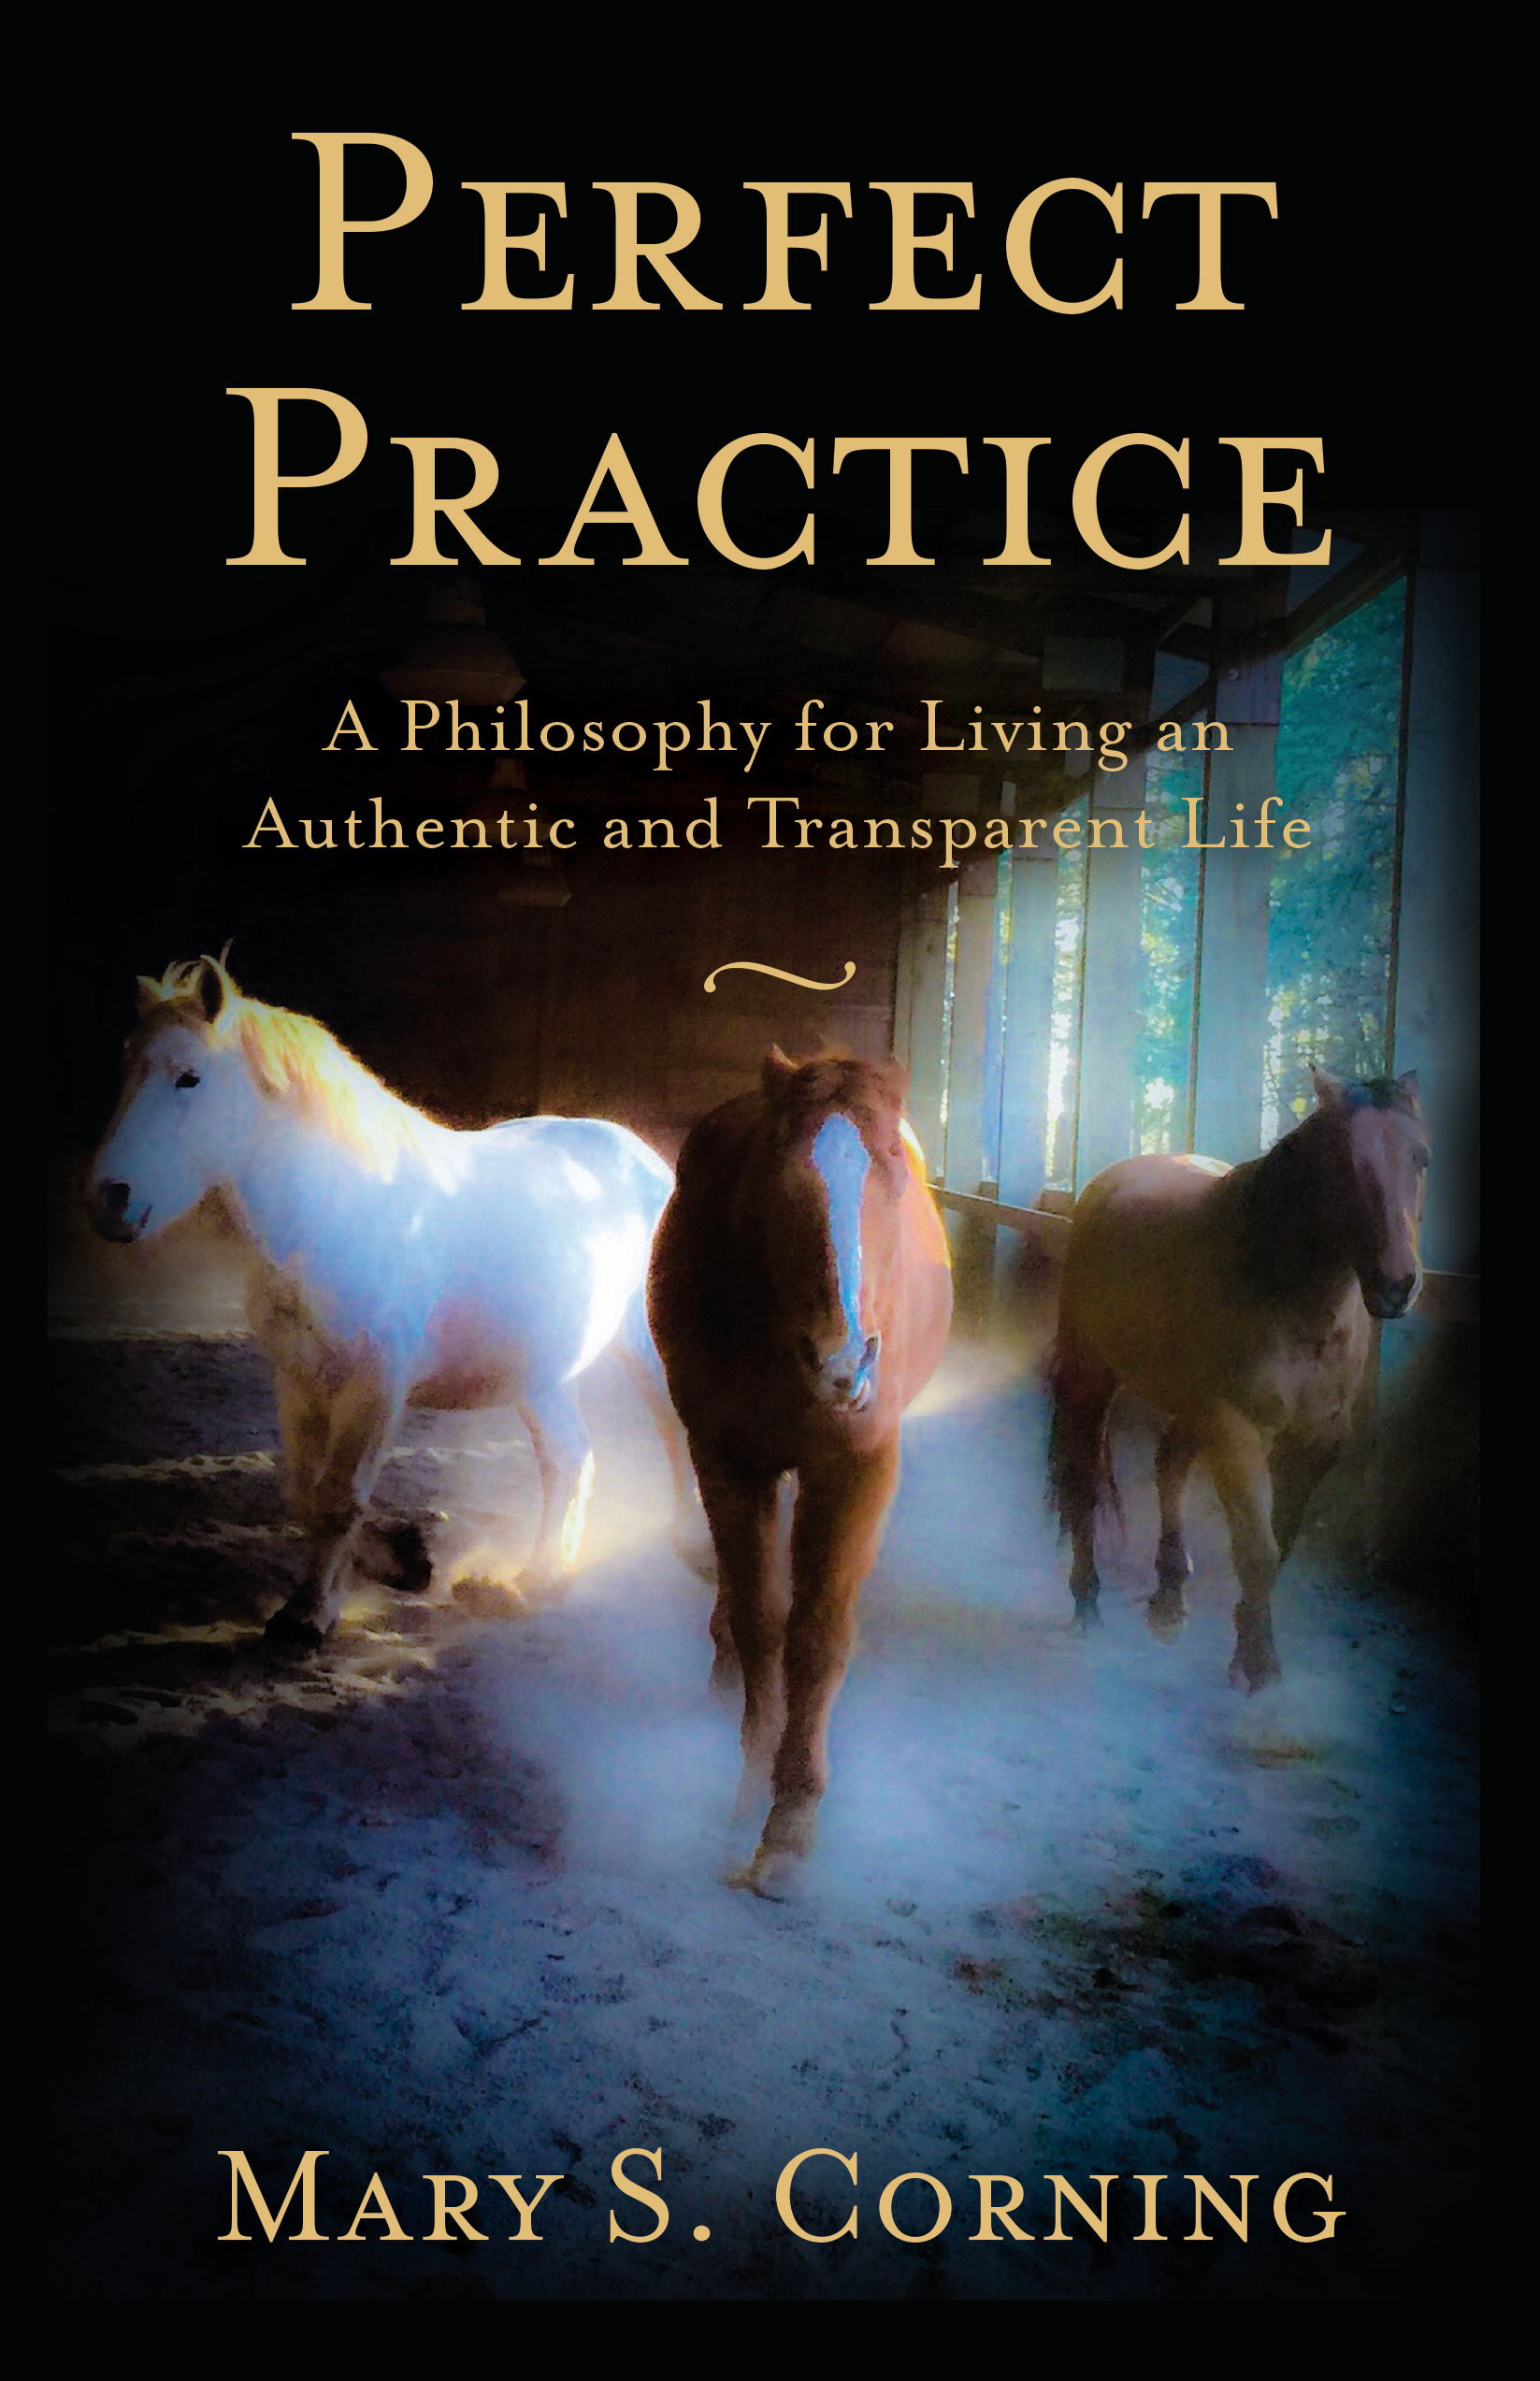 Perfect Practice by Mary Corning (Circle Around Publishing, March 2019)